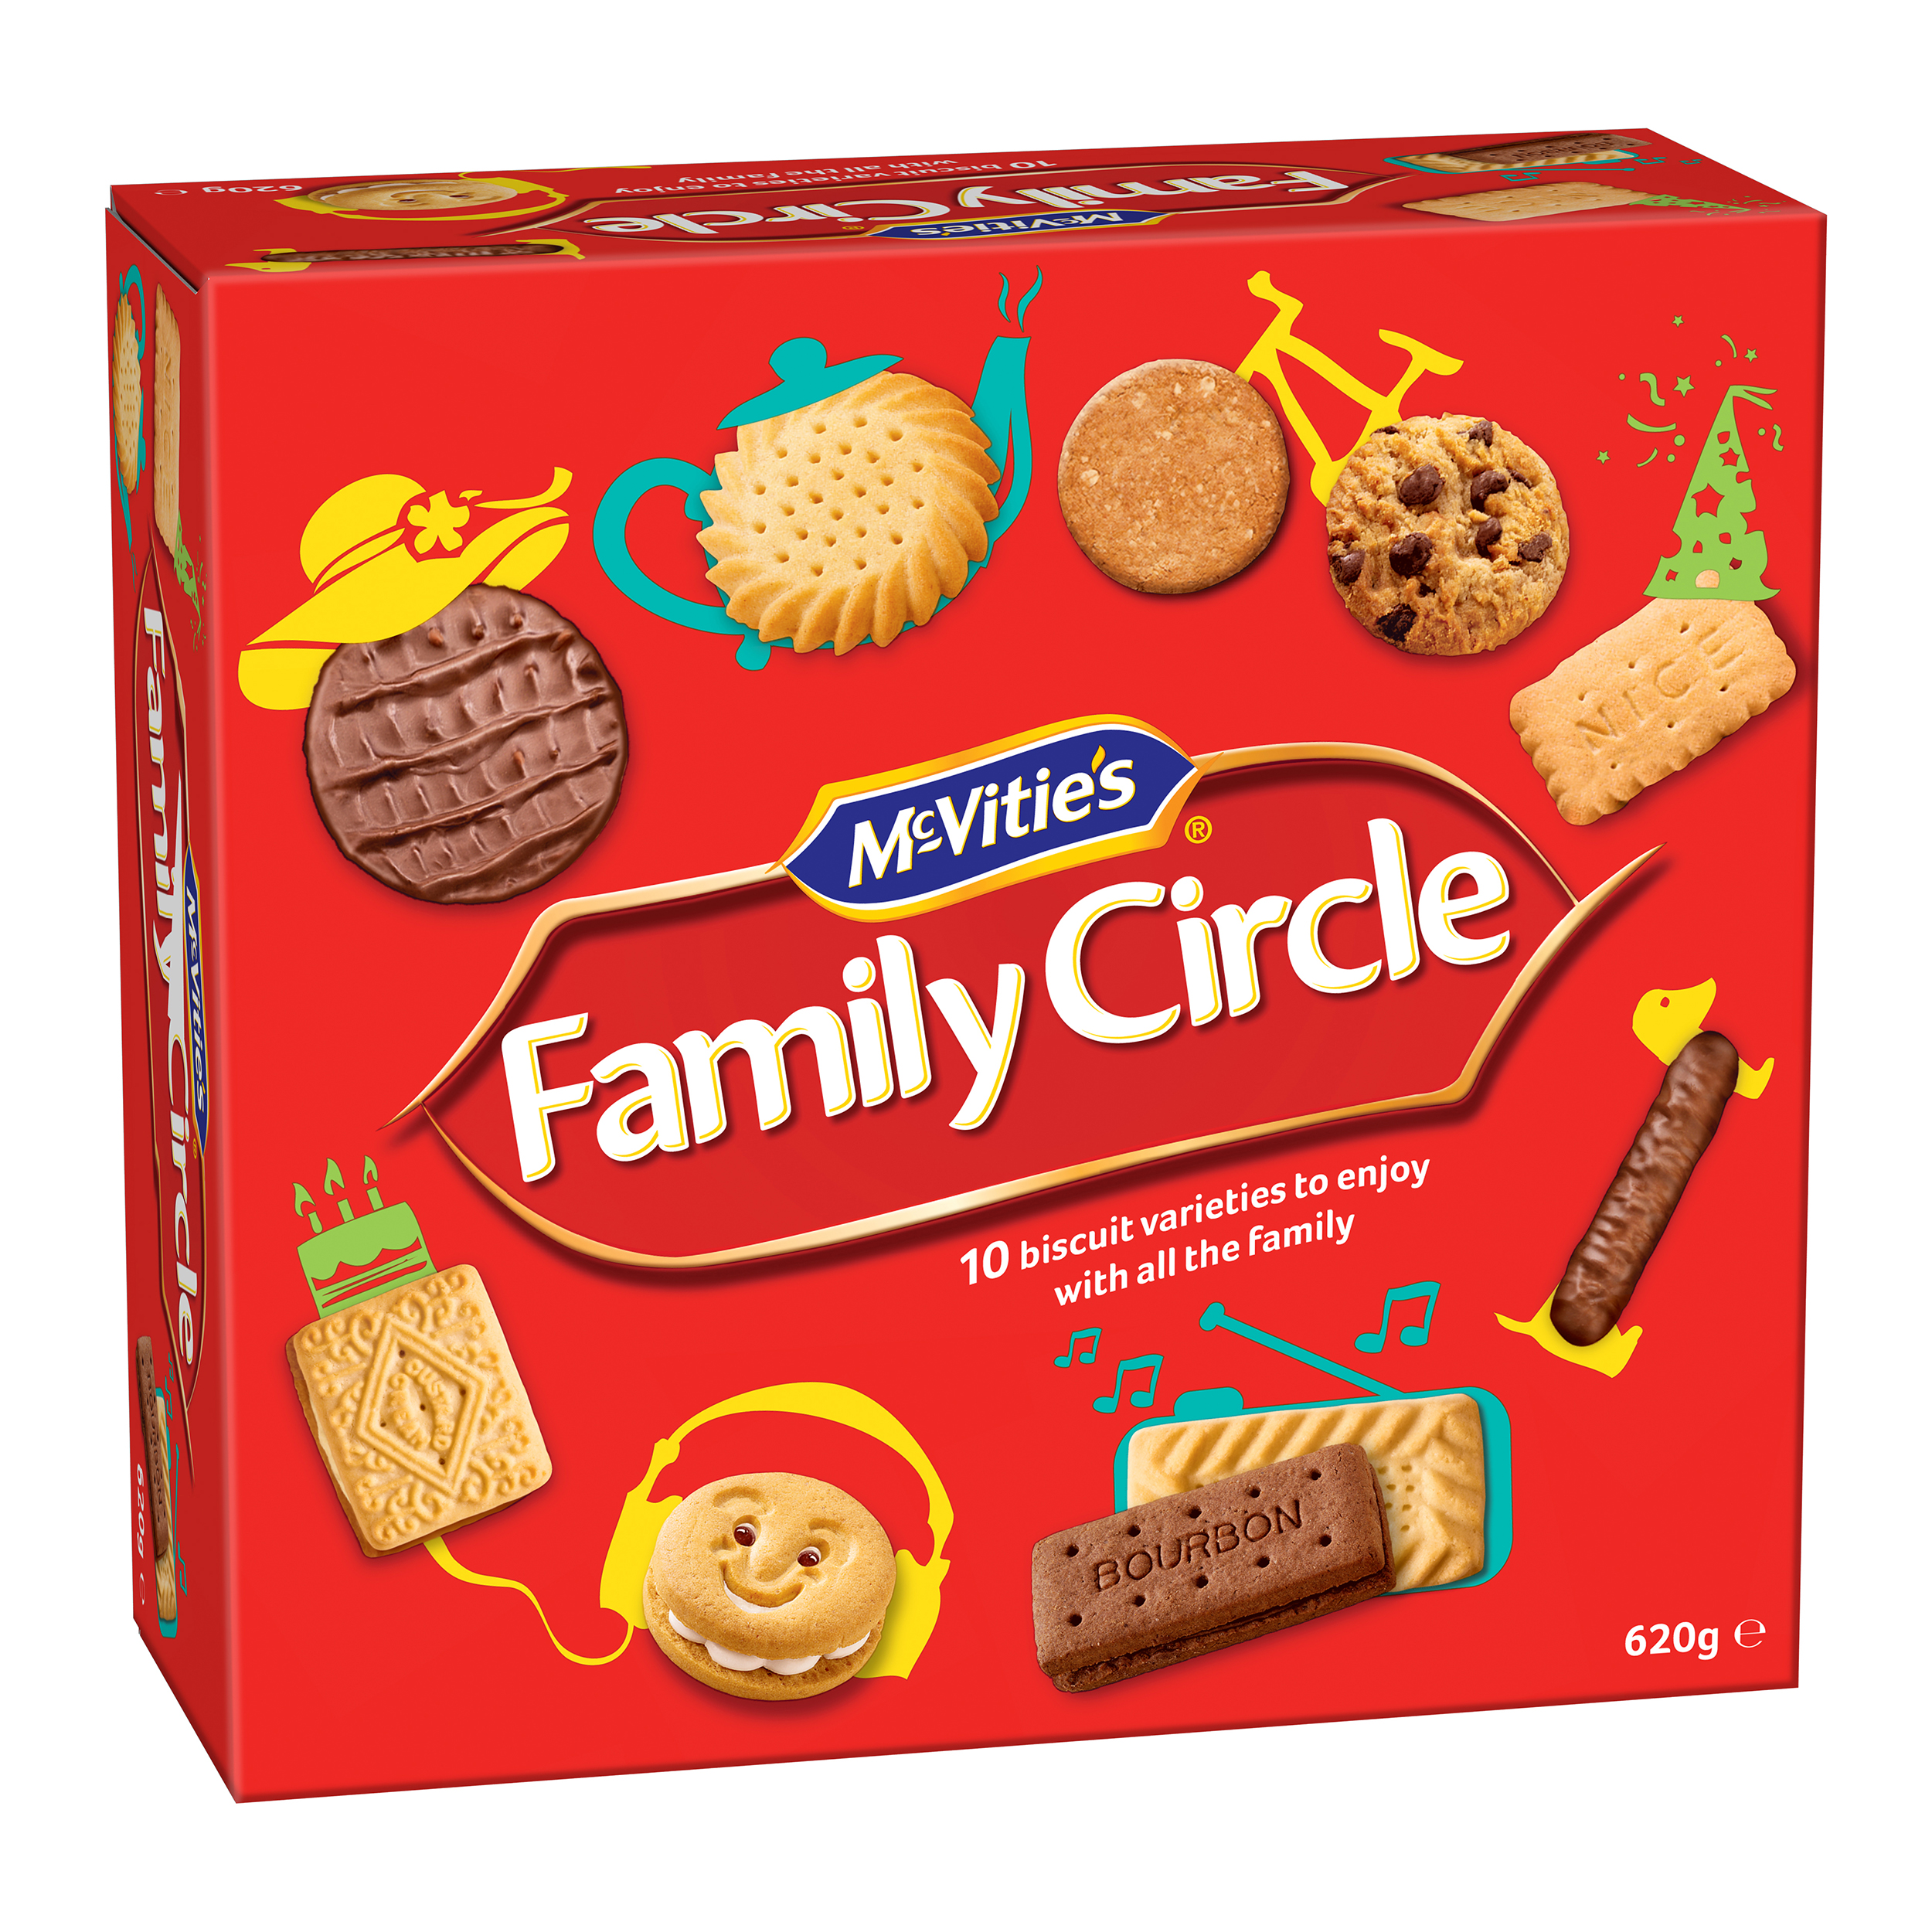 Crawfords Family Circle Biscuits Re-sealable Box 10 Varieties 670g Assorted Ref 0401018